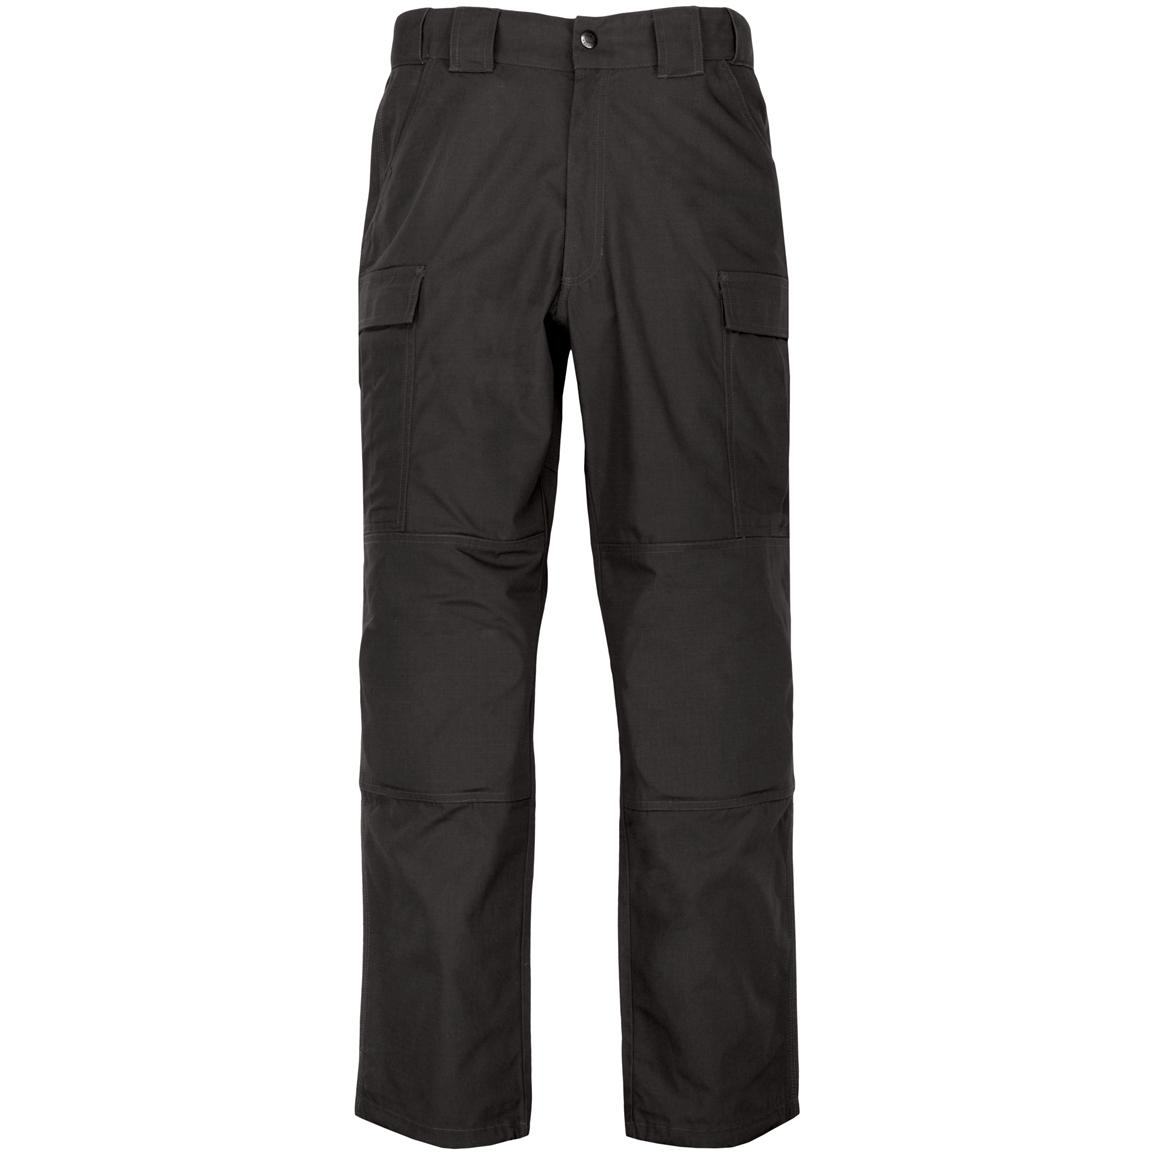 Men's 5.11 Tactical® Ripstop TDU® Pants, Black